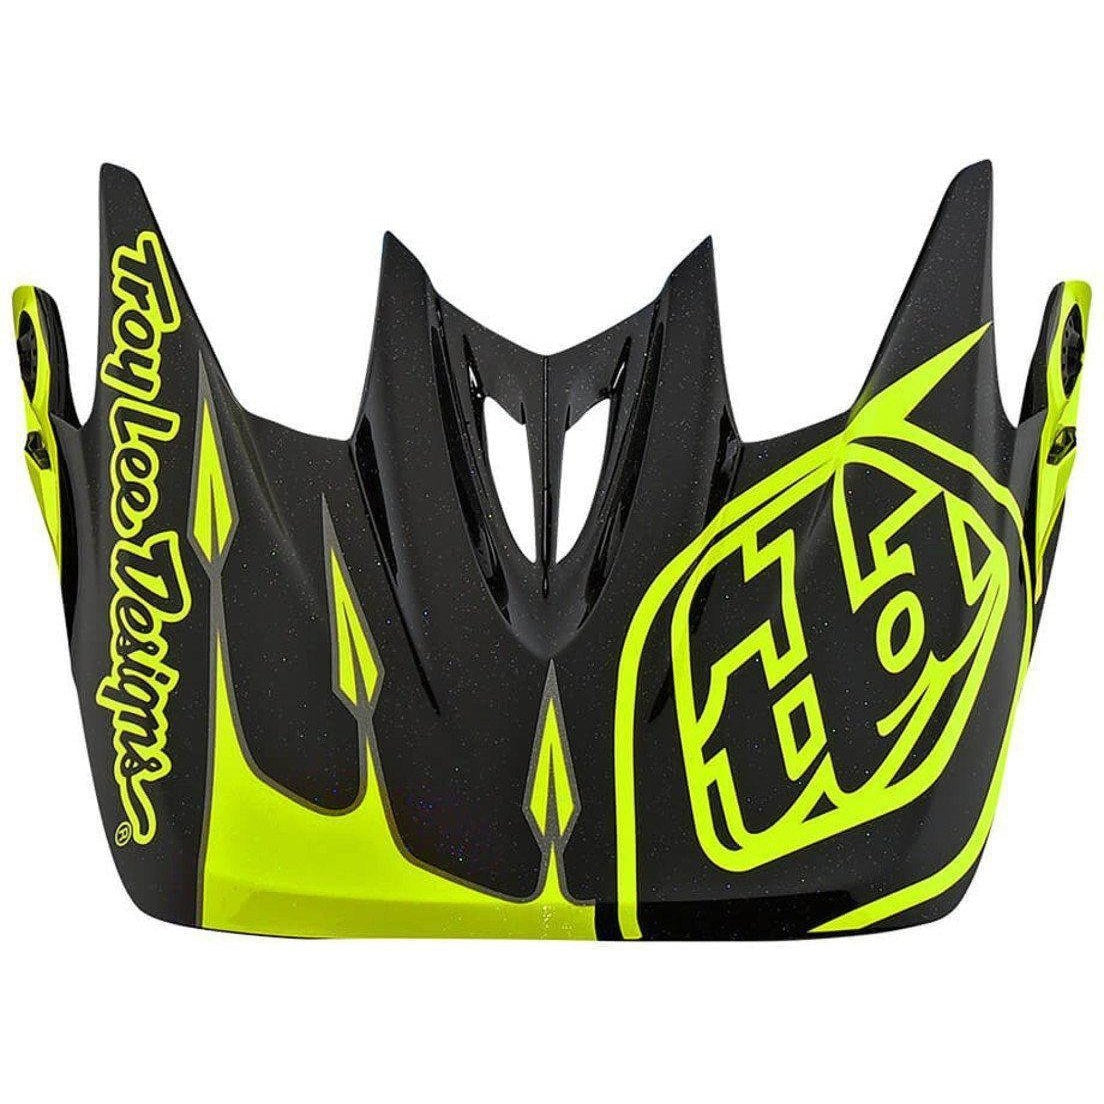 Troy Lee Designs-Troy Lee Designs D3 Helmet Replacement Visor-CORONA FLO YELLOW-D3 Composite-TLD157581500-saddleback-elite-performance-cycling